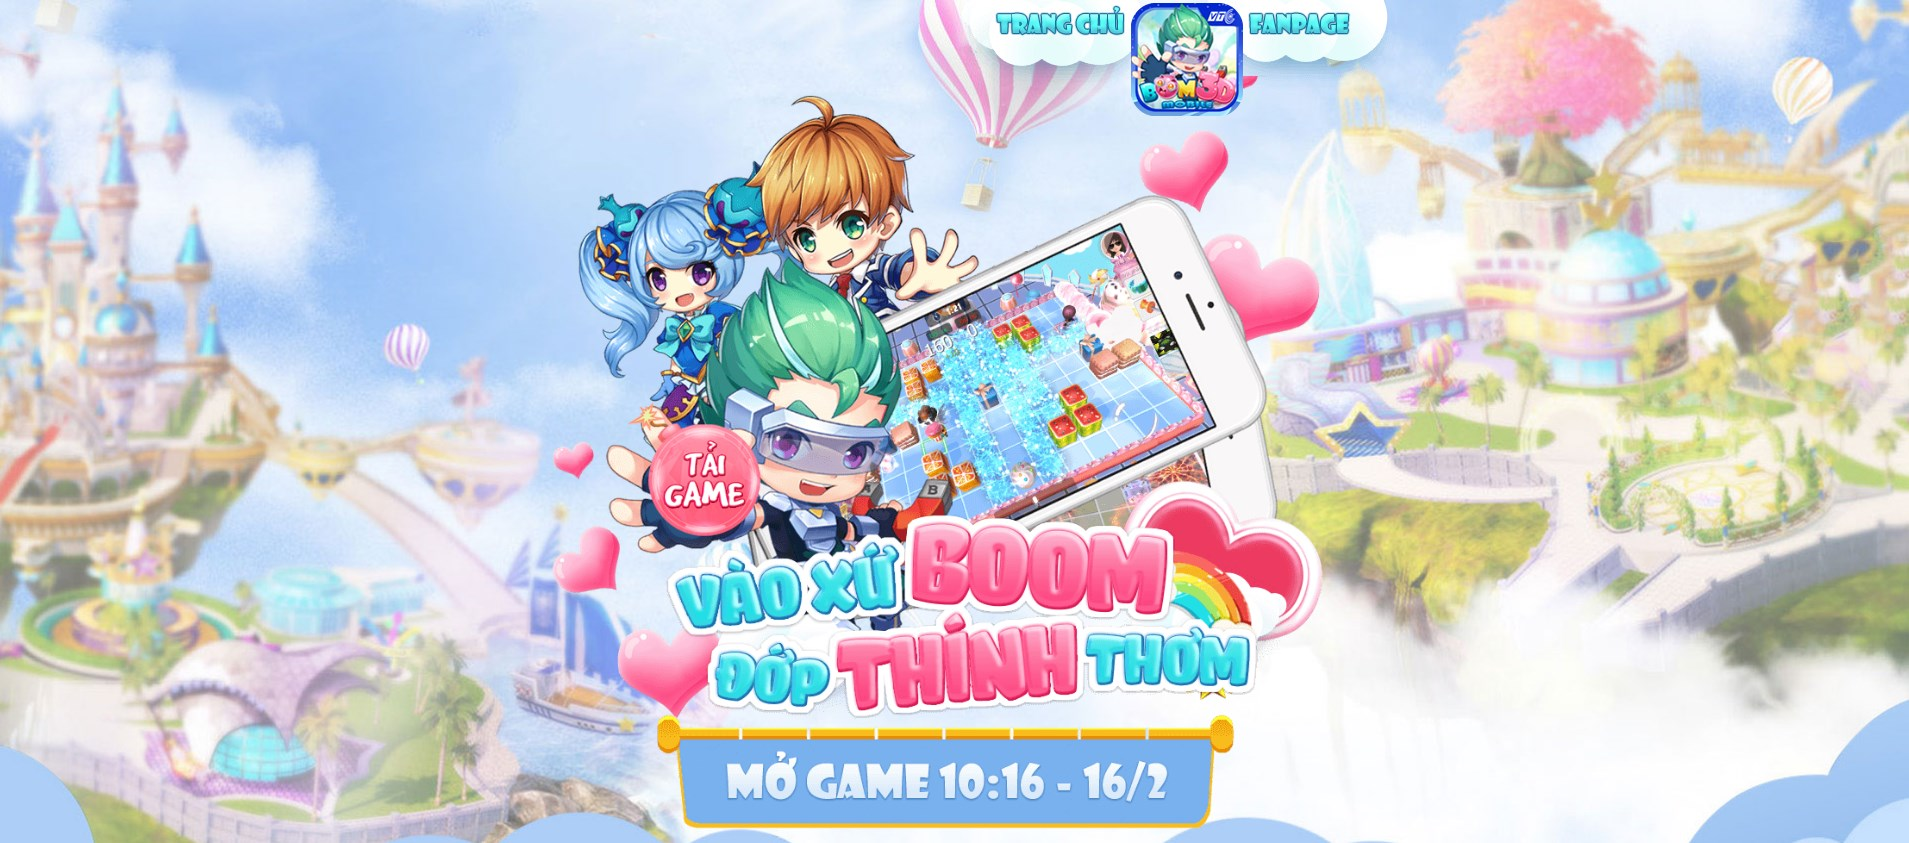 Boom 3D Mobile ra mắt, tặng Giftcode khủng